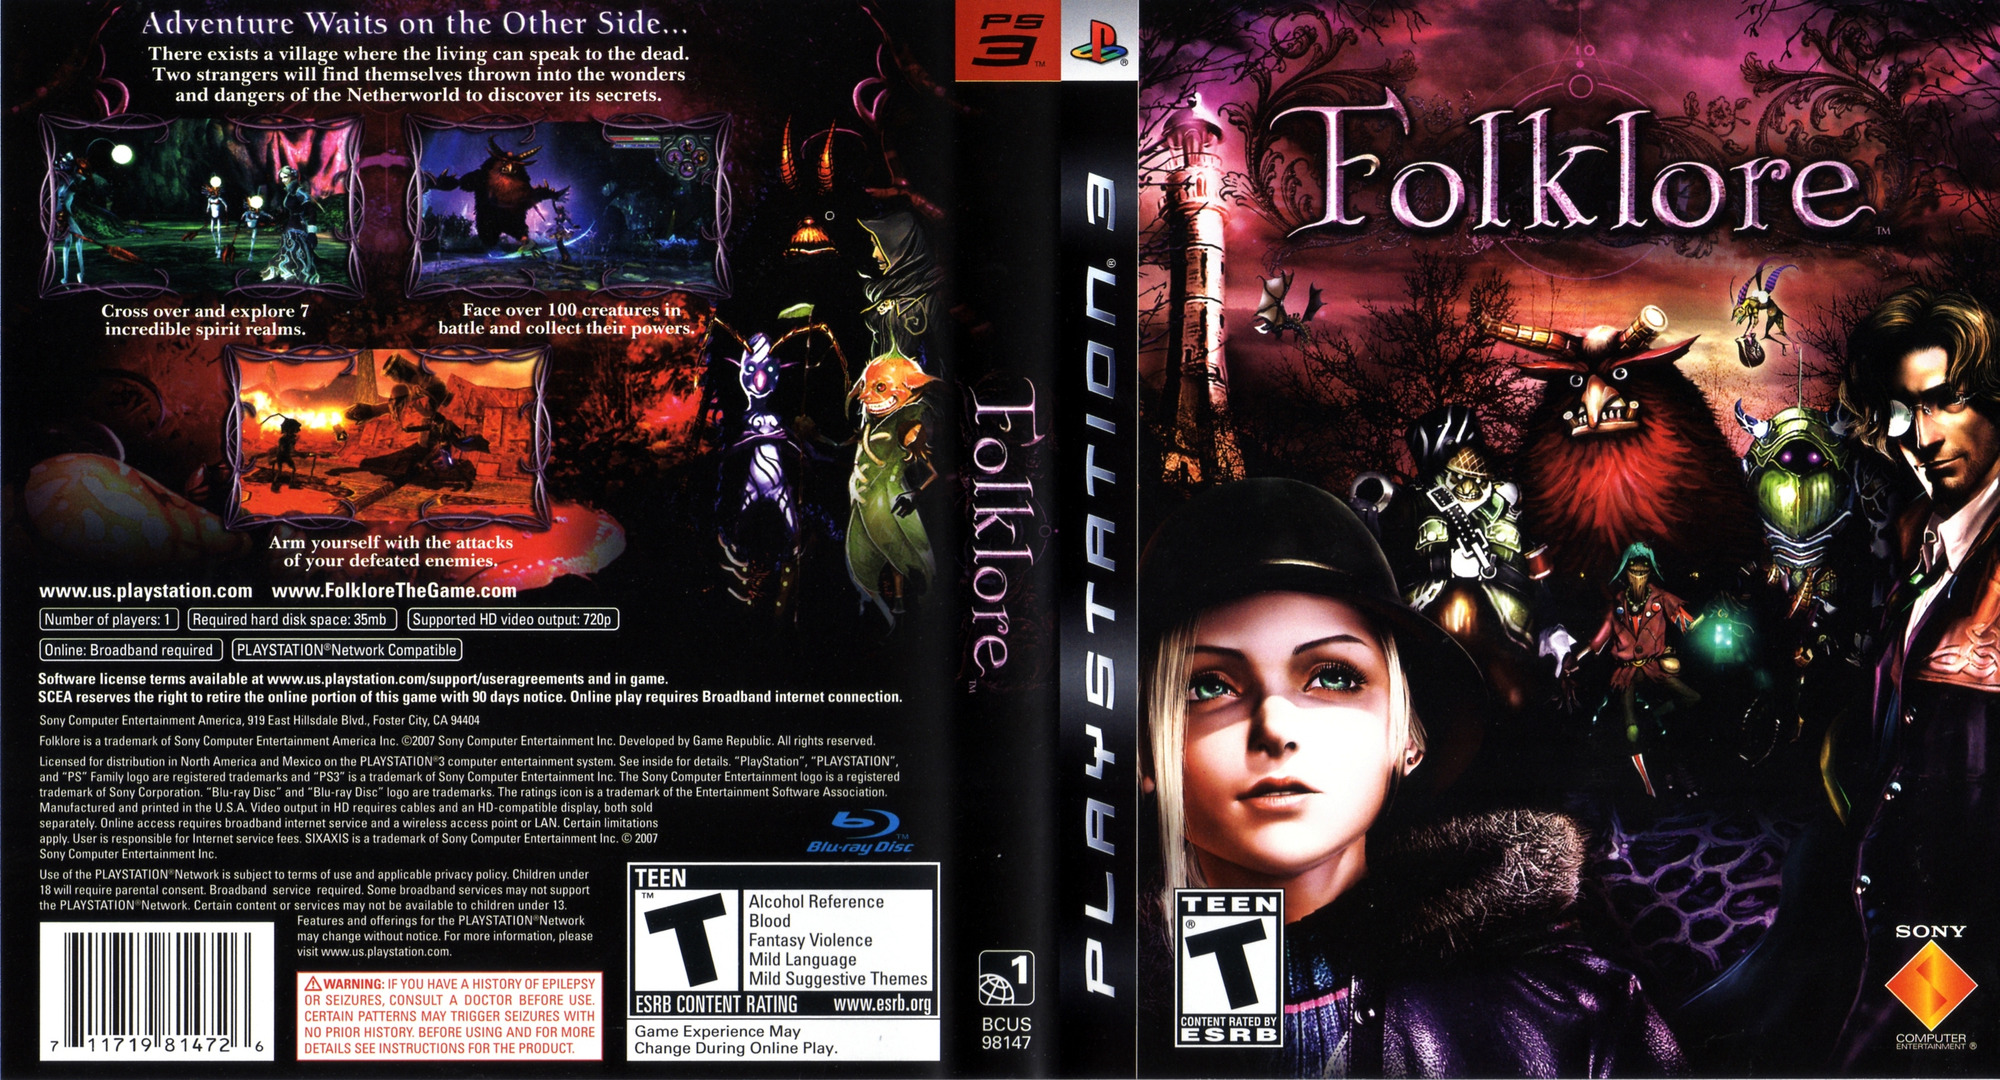 Folklore PS3 coverfullHQ (BCUS98147)